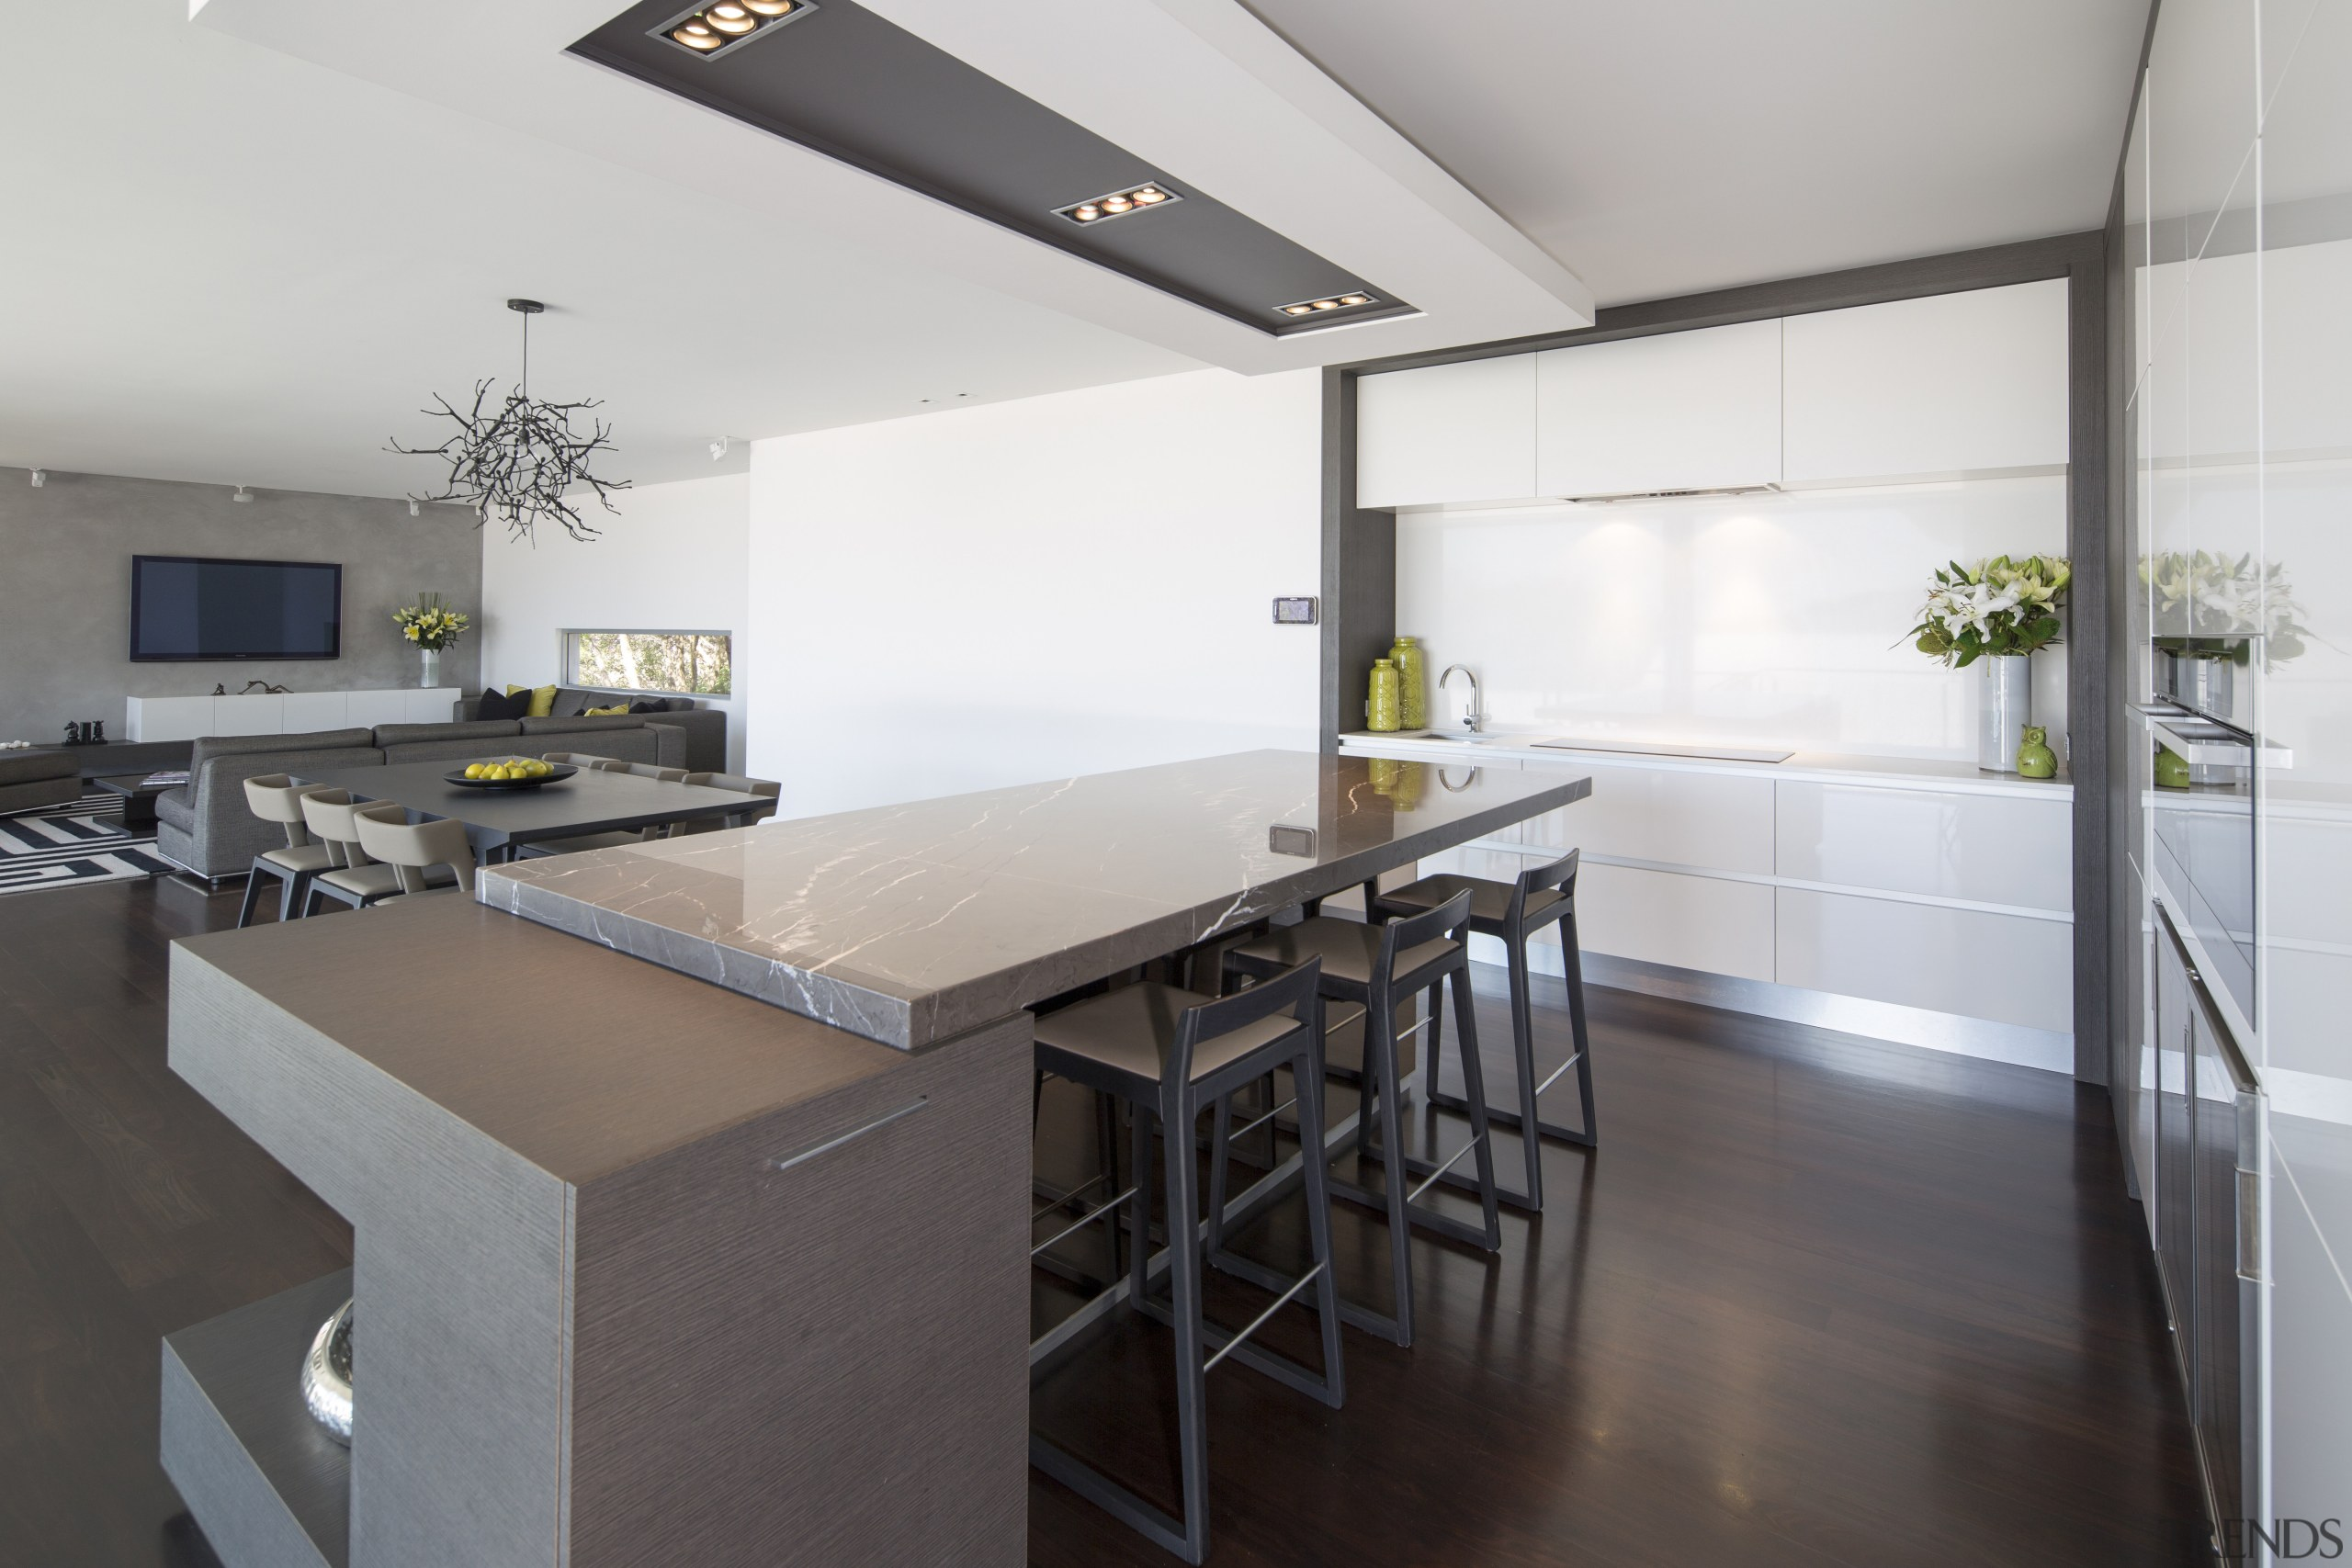 A large, rectangular bulkhead mimics the shape of countertop, floor, interior design, kitchen, real estate, white, gray